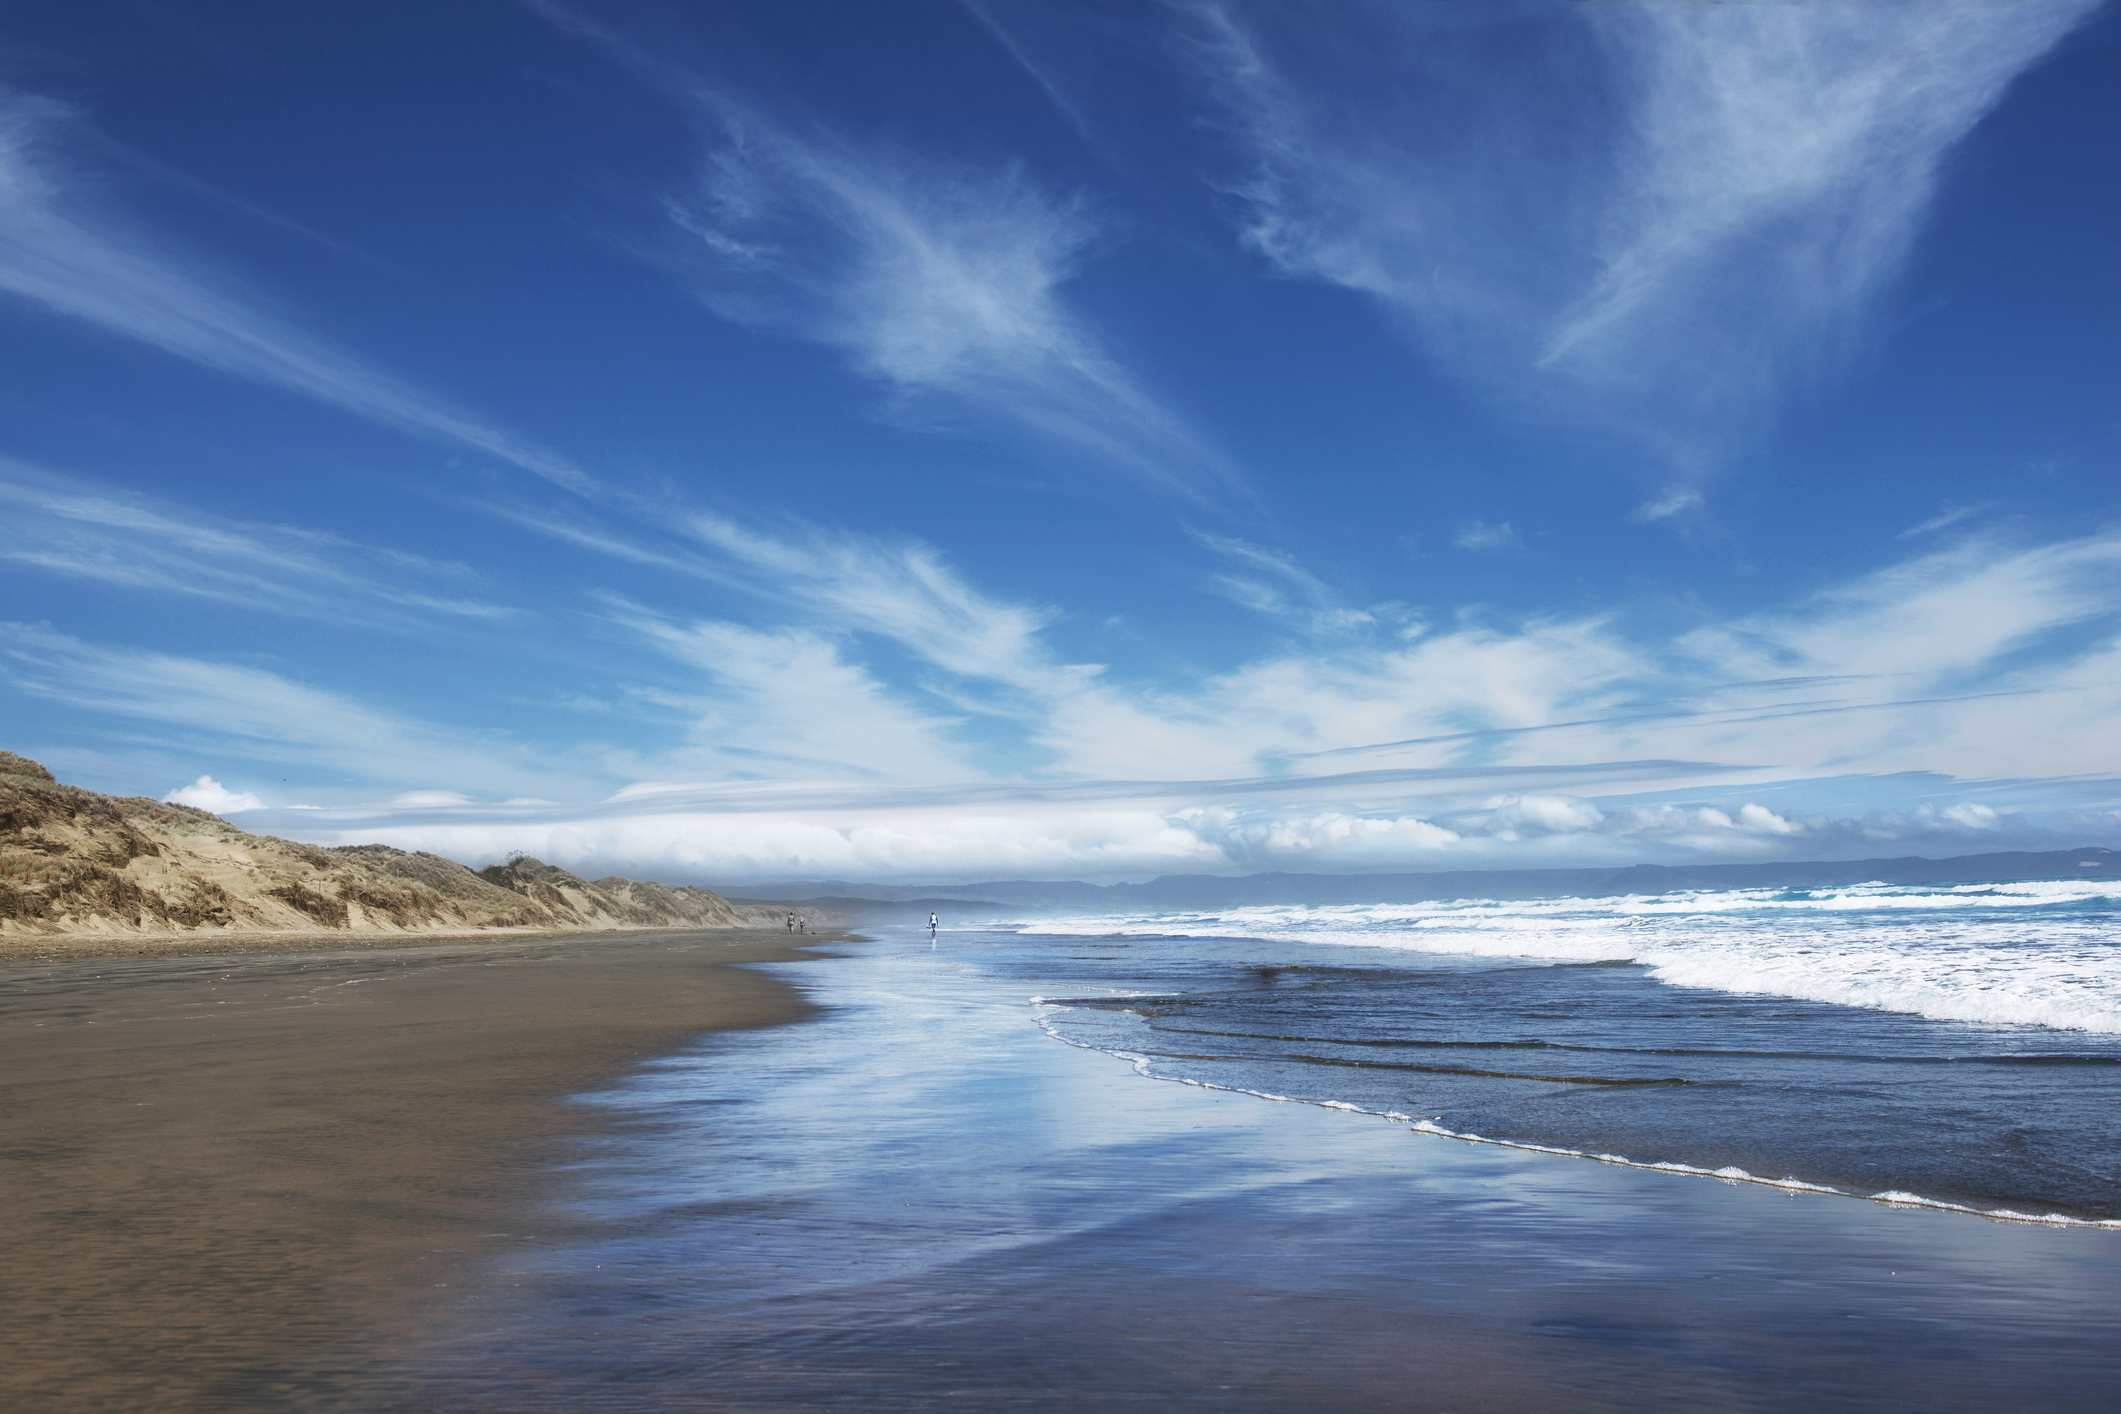 A beach in the Northlands of New Zealand.